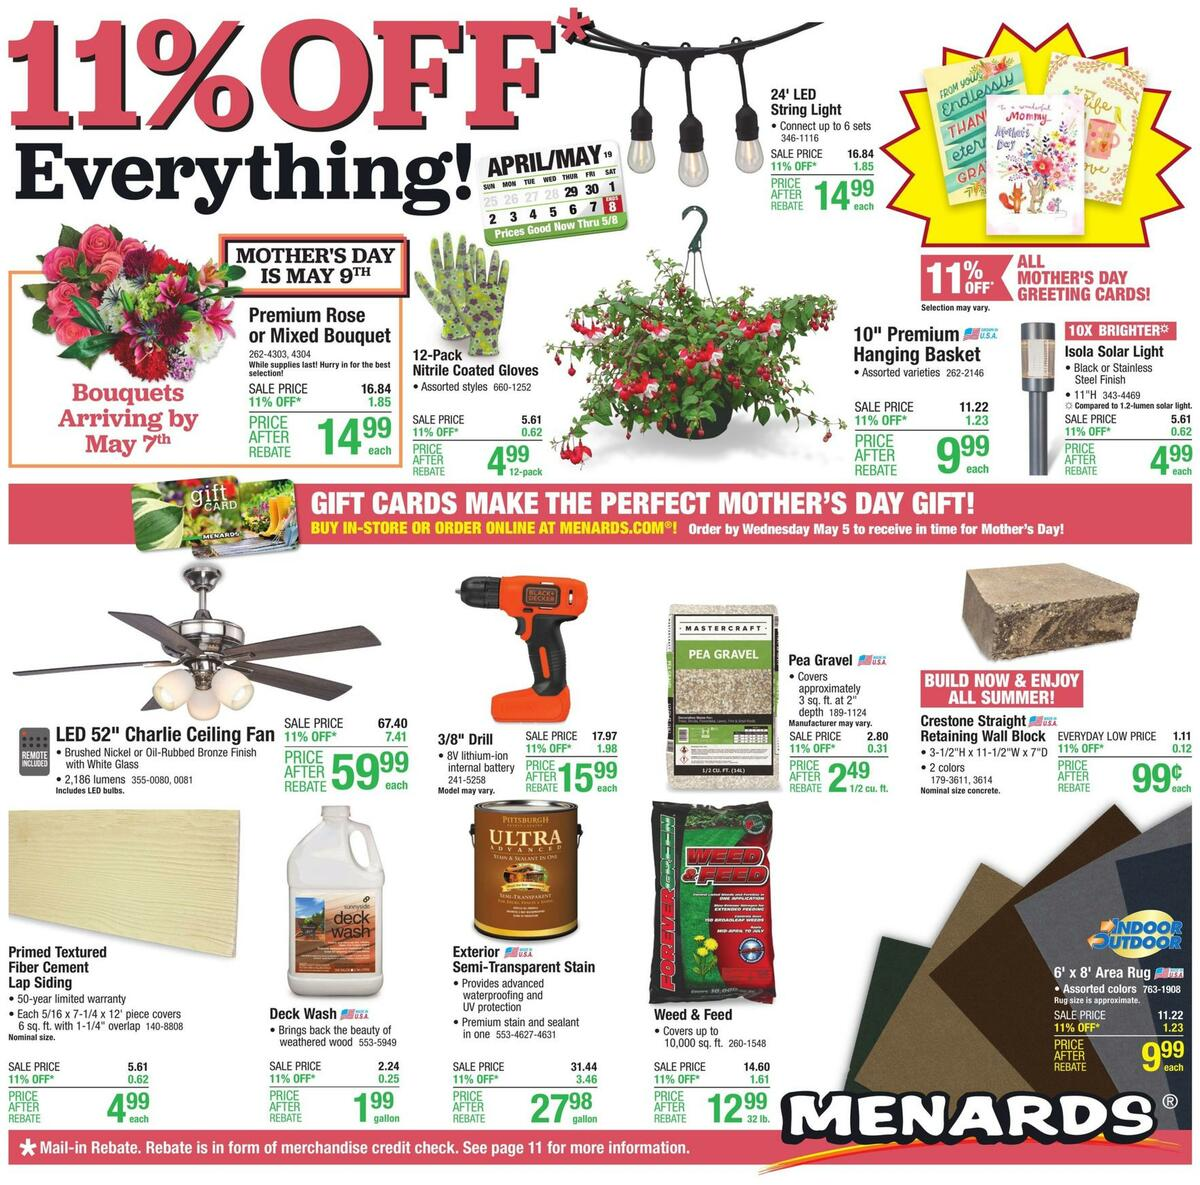 Menards Weekly Ad from April 29